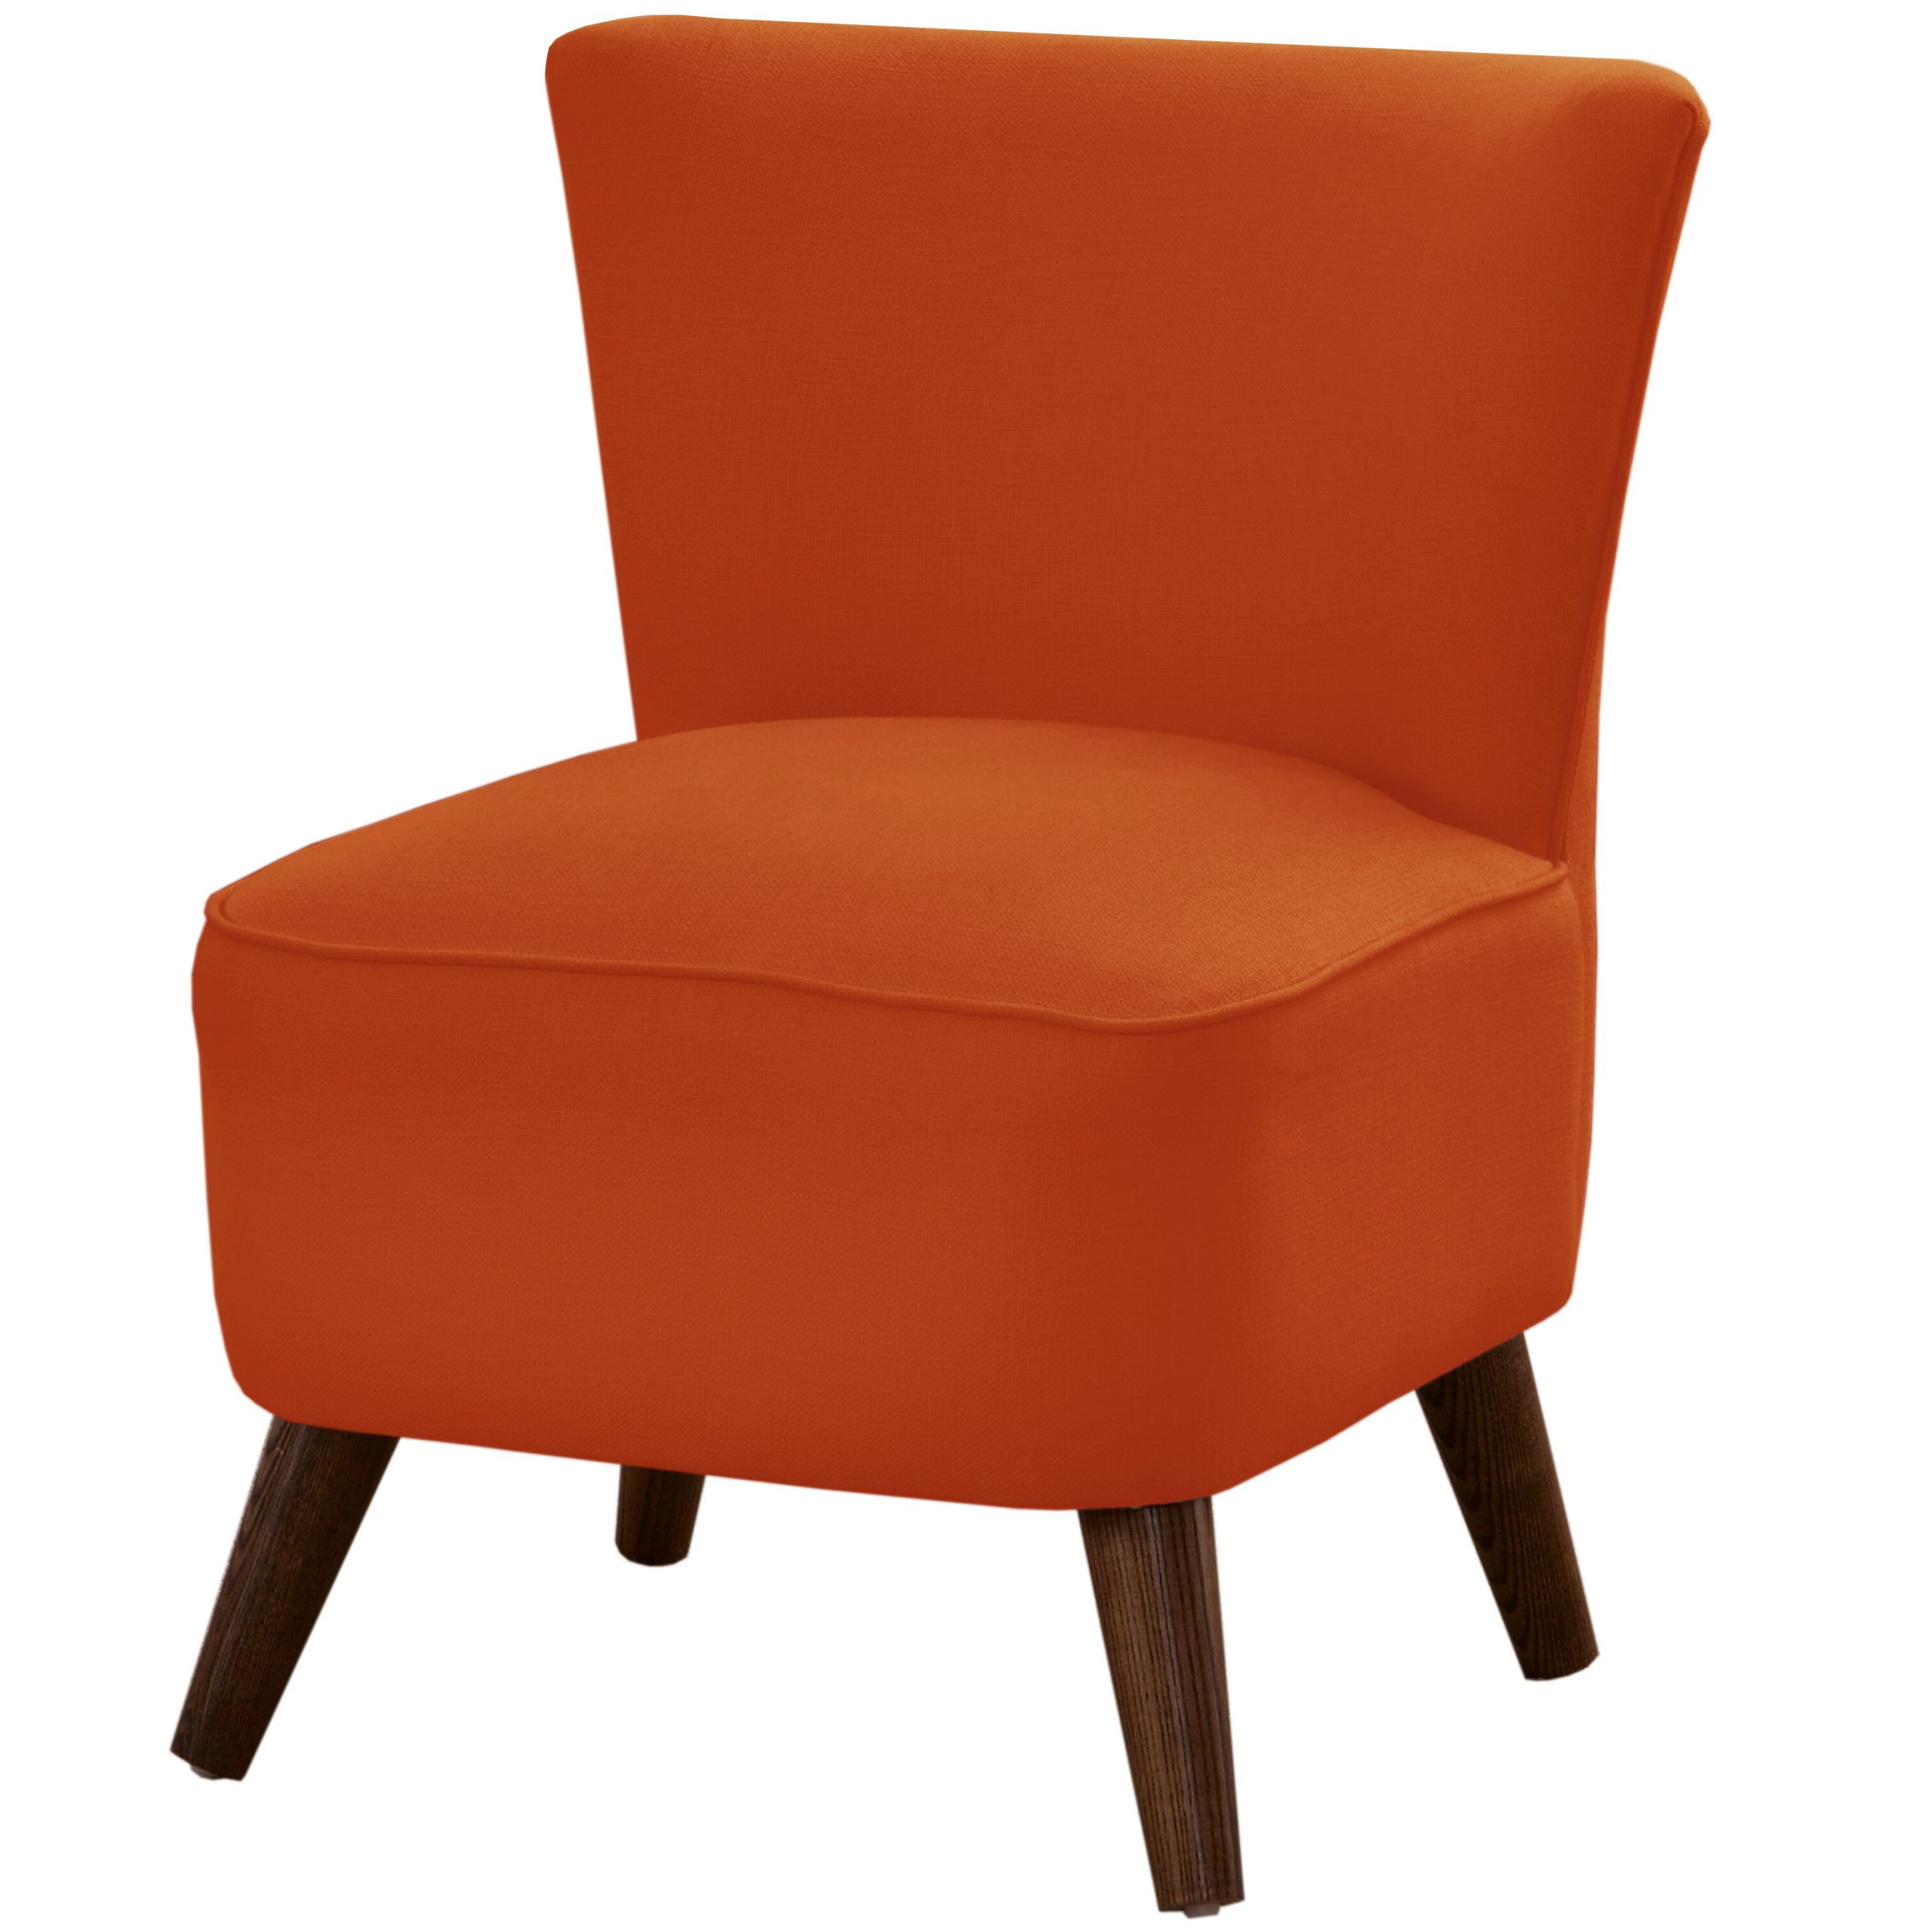 Easterling Velvet Slipper Chairs Throughout Most Recent Griner Slipper Chair (View 3 of 20)